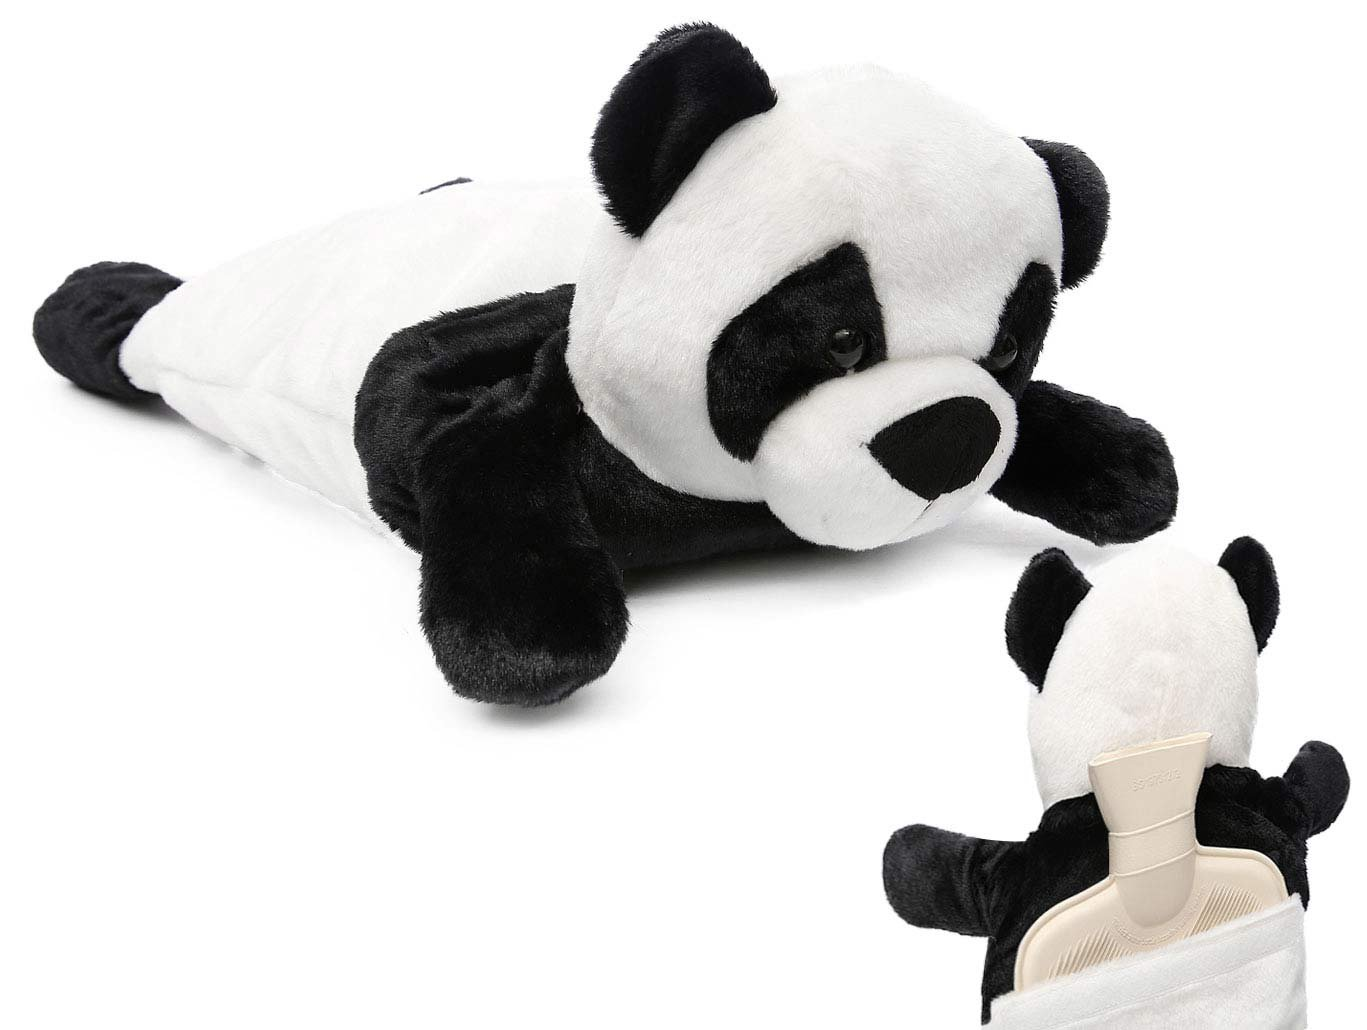 HomeTop Premium Adorable Rubber Hot or Cold Water Bottle with Cute Stuffed Panda Cover 2 Liters (Cute Panda) by HomeTop